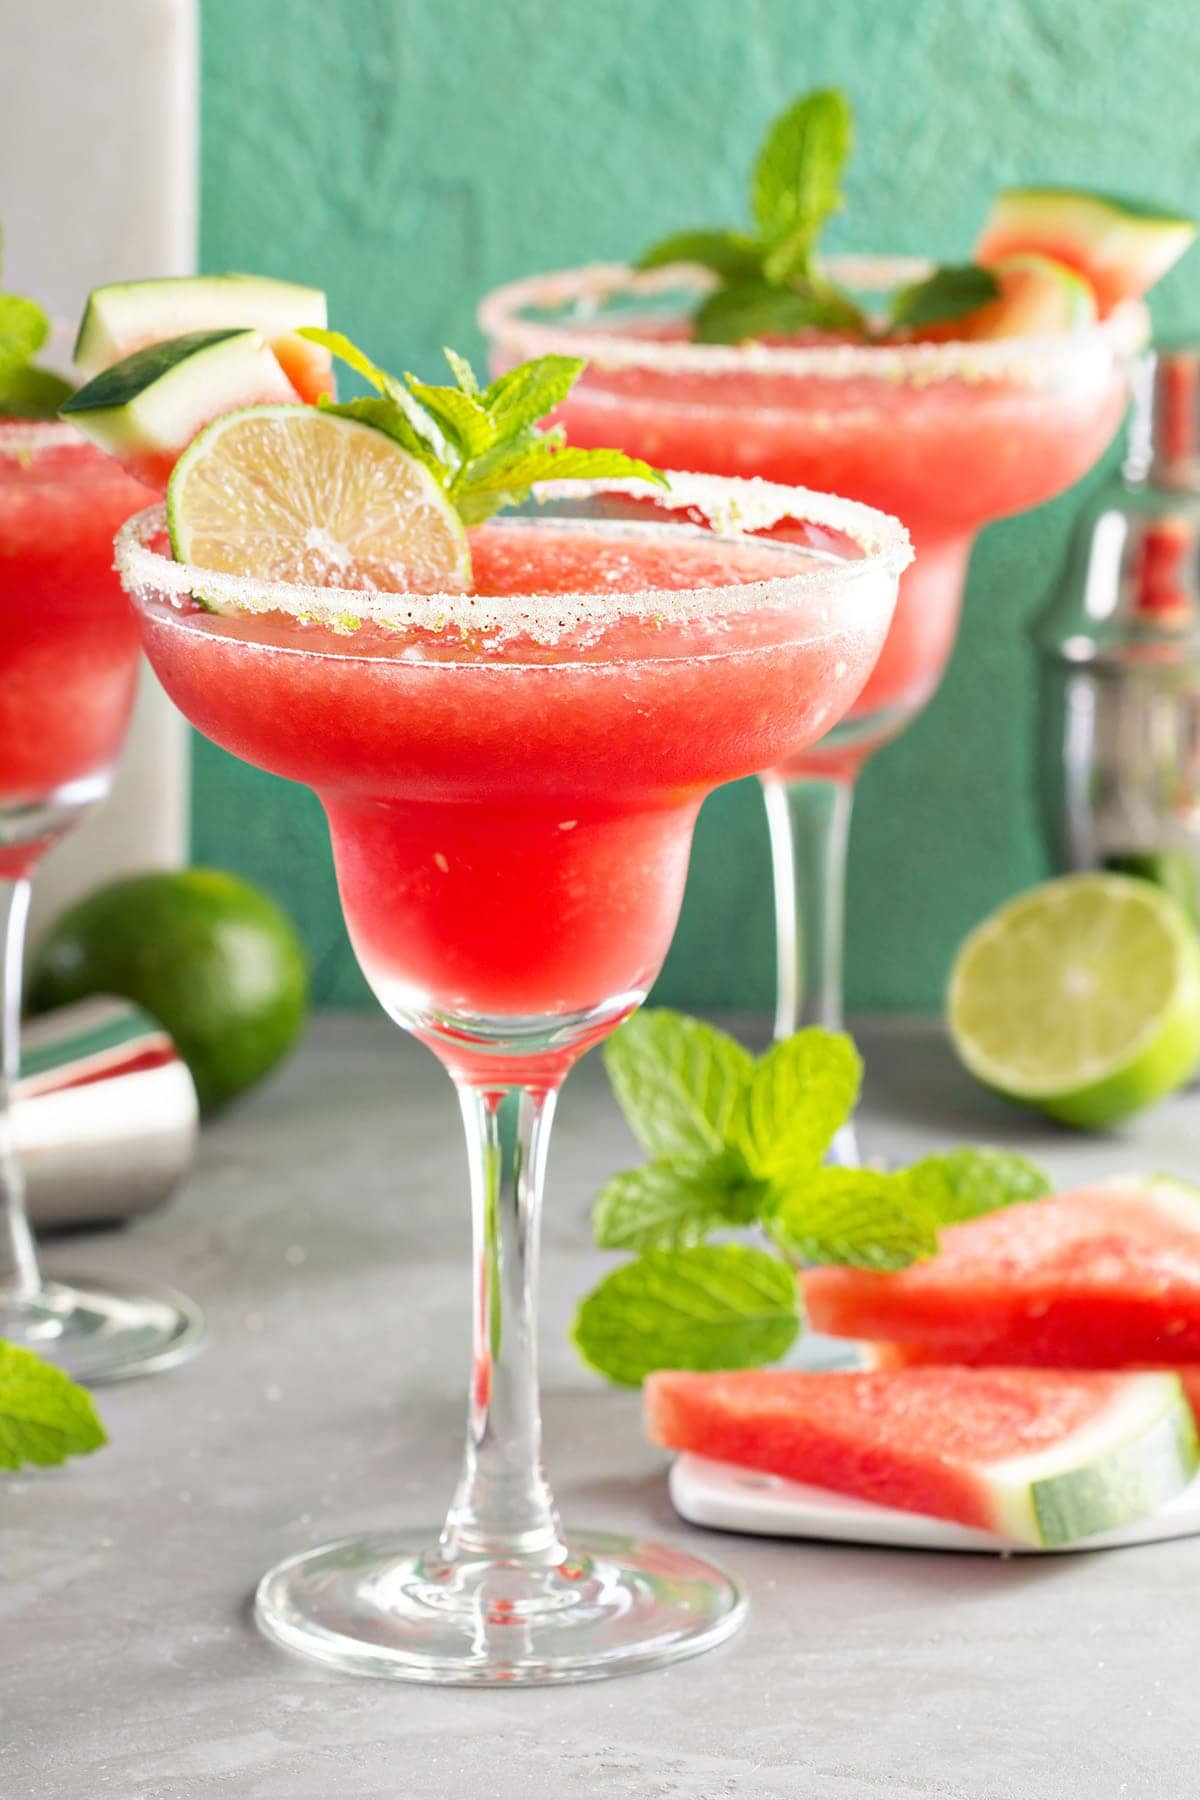 Closeup of Frozen Margarita with lime and watermelon garnish and sugared rim.